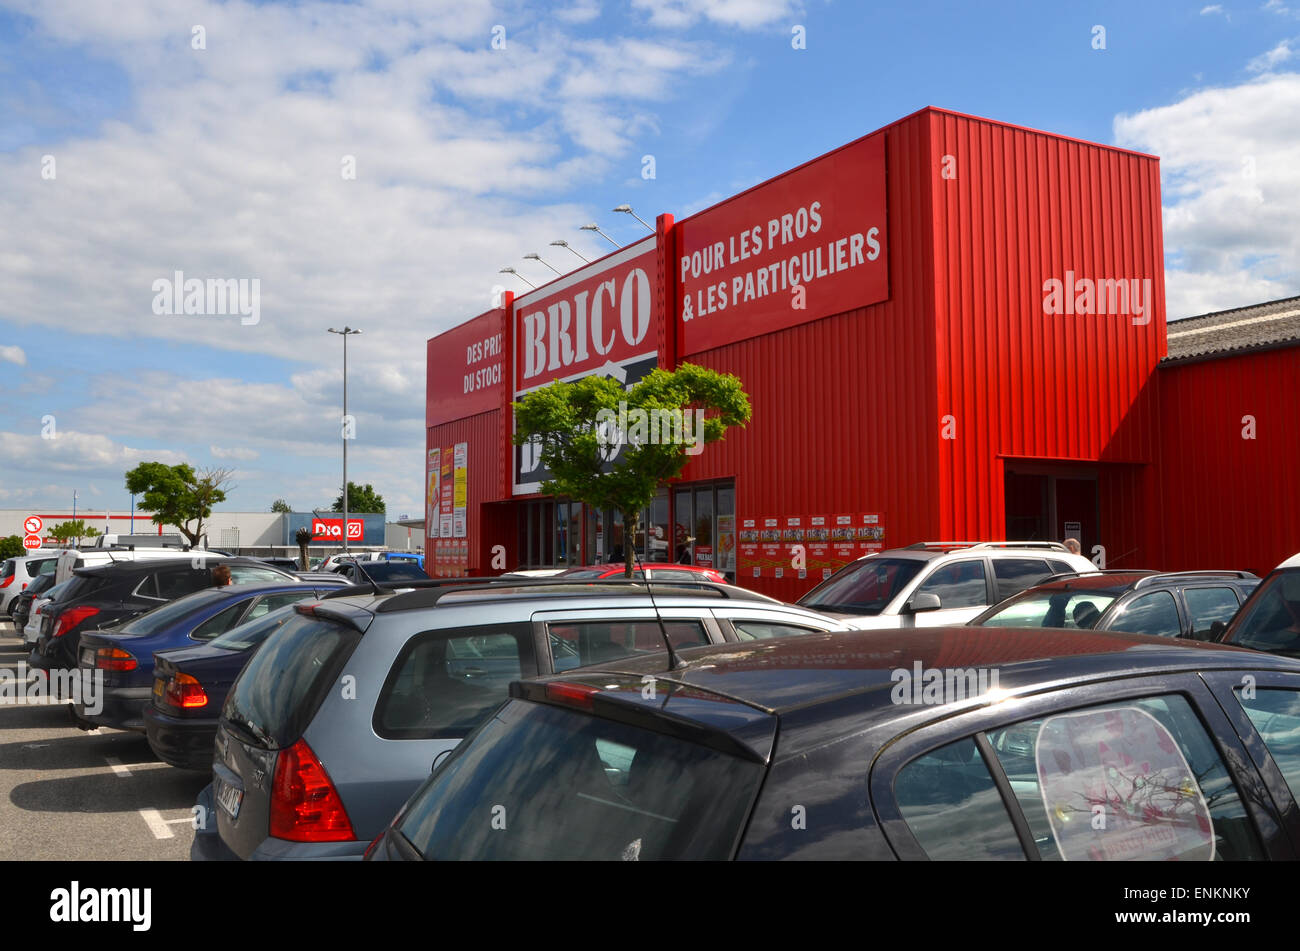 Brico Depot, DIY Store, France   Stock Image